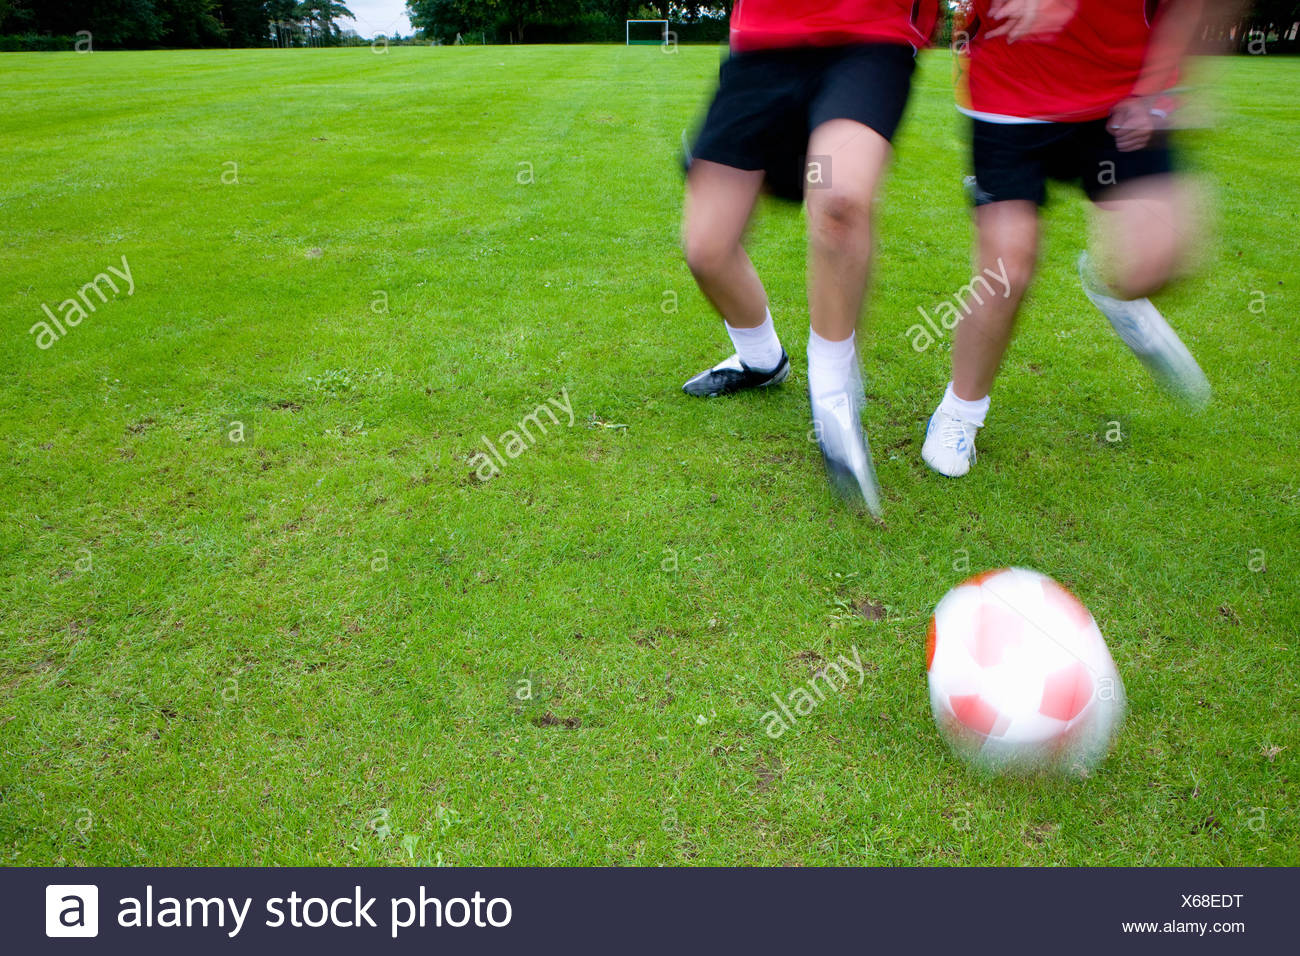 Soccer players running toward ball - Stock Image